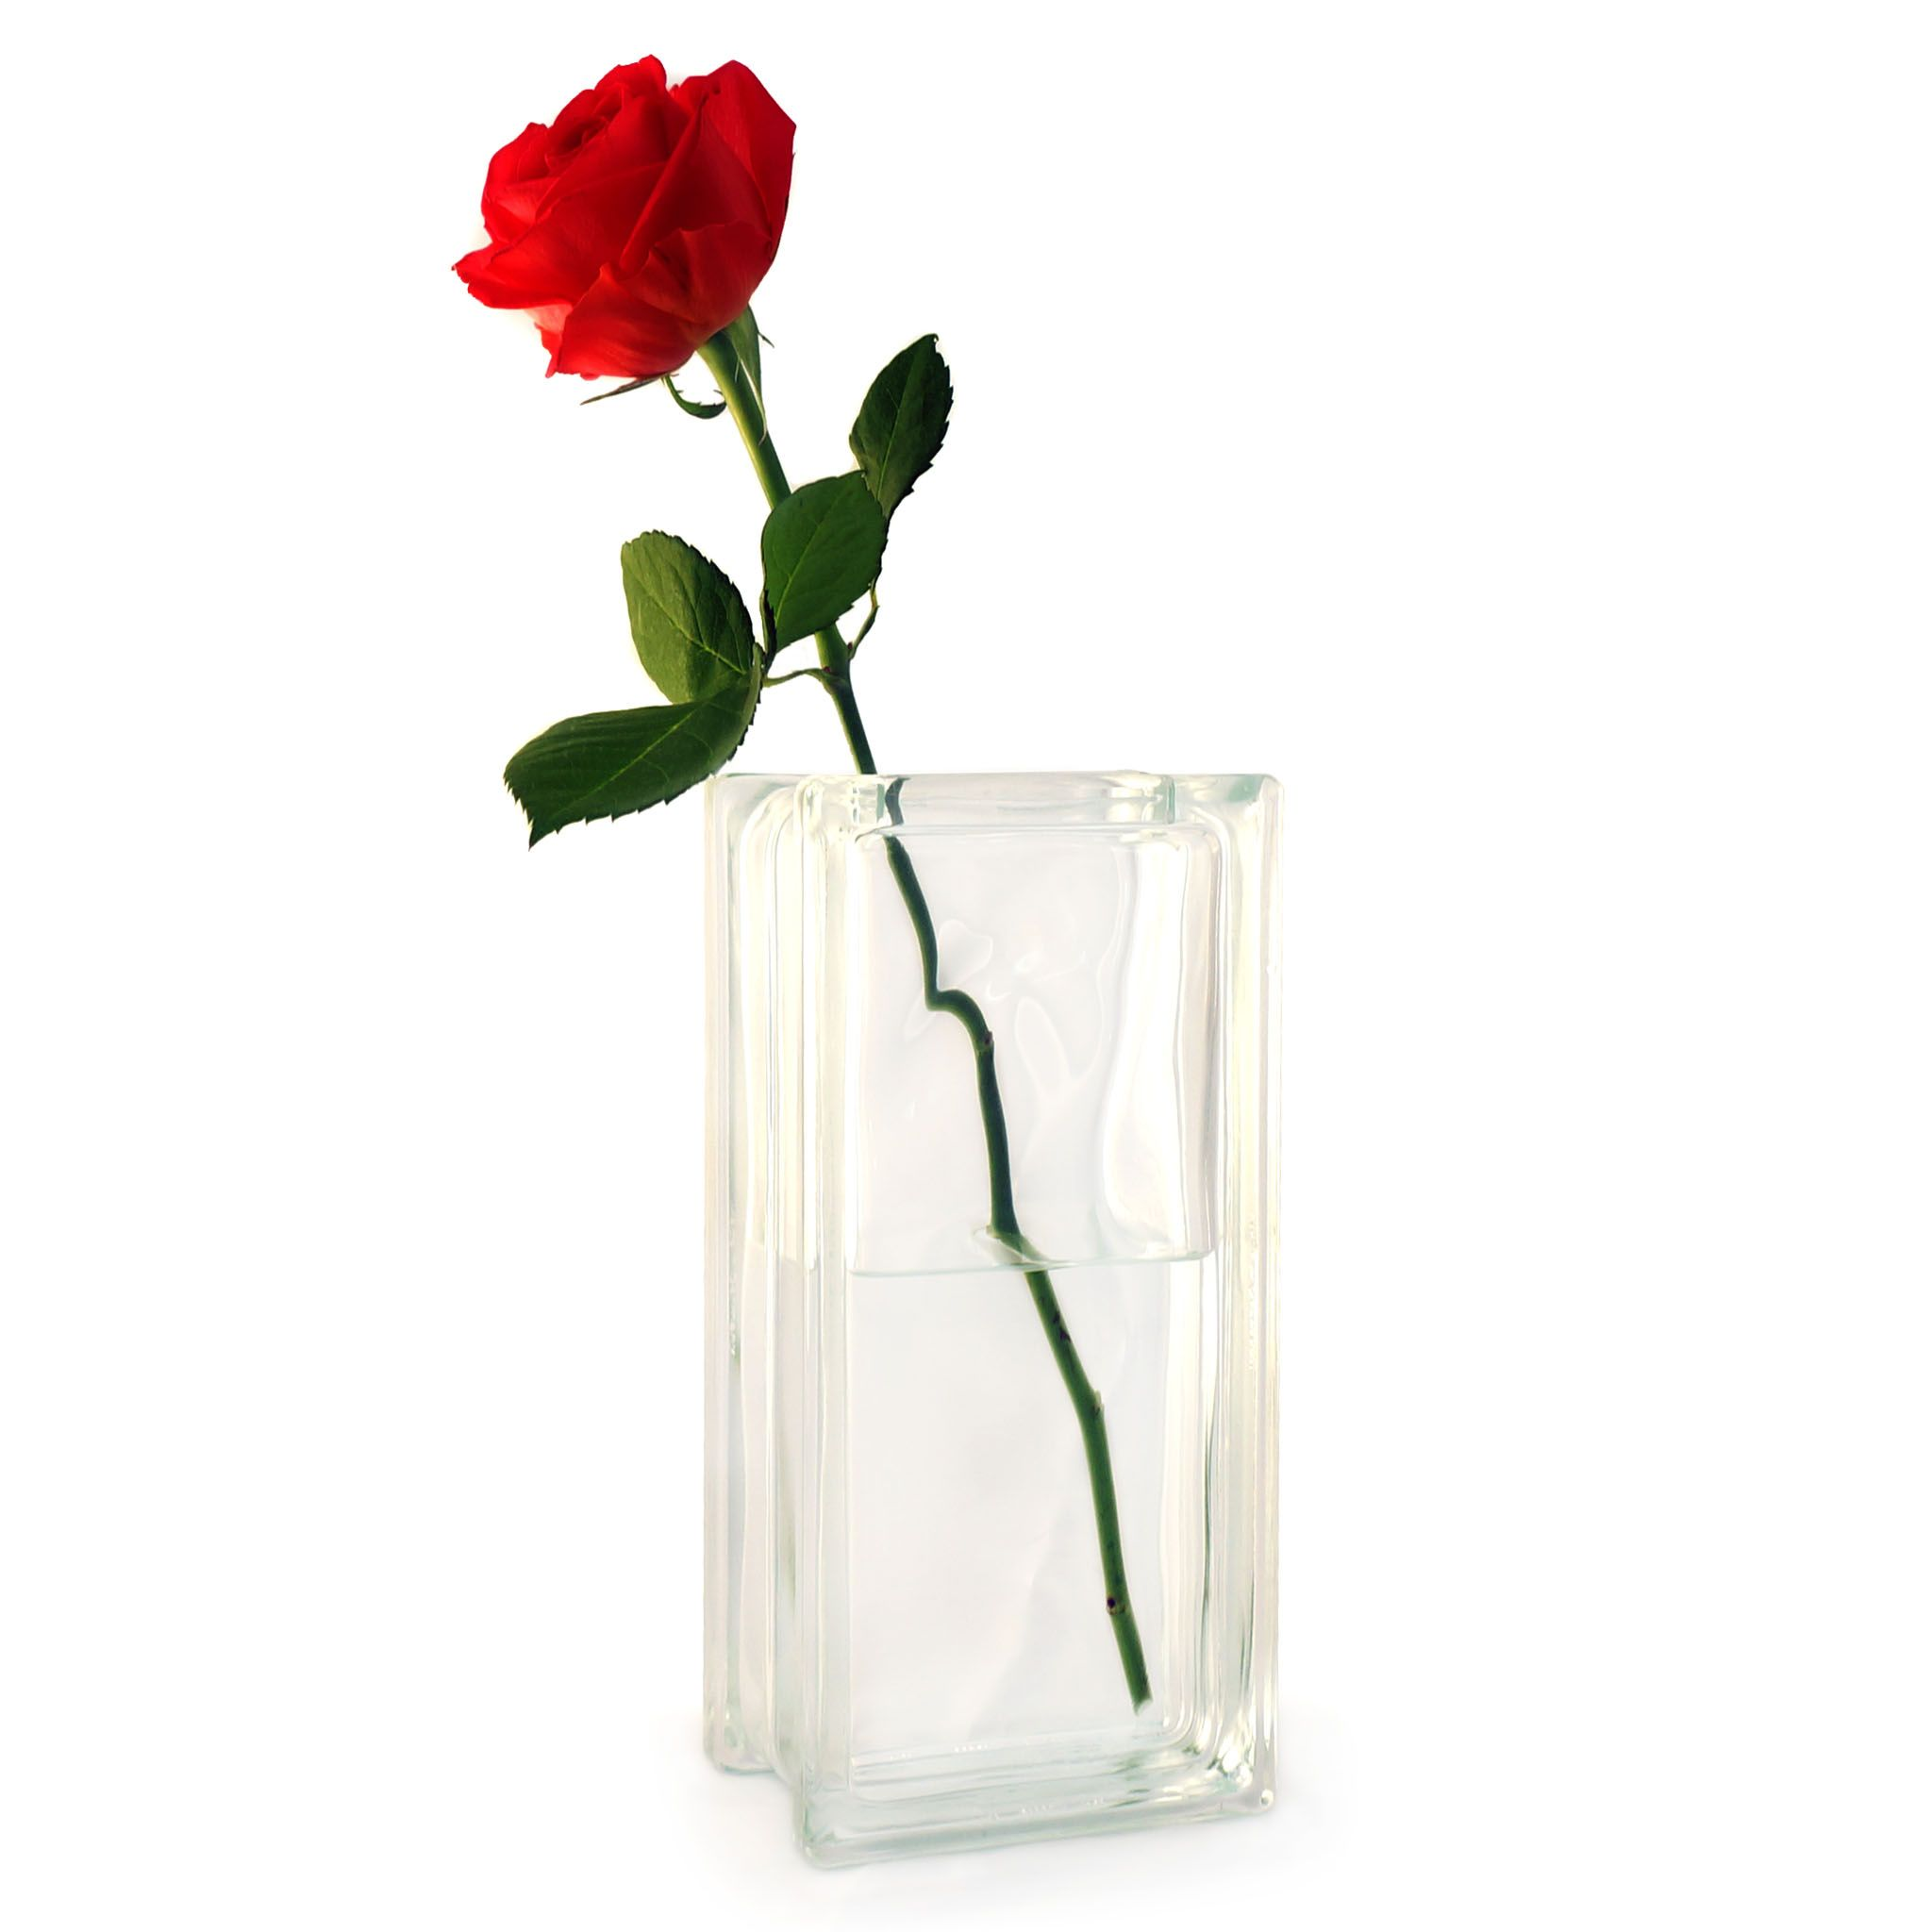 Rosen In Vase Single Red Rose In A Glass Block Vase Lovely Romantic